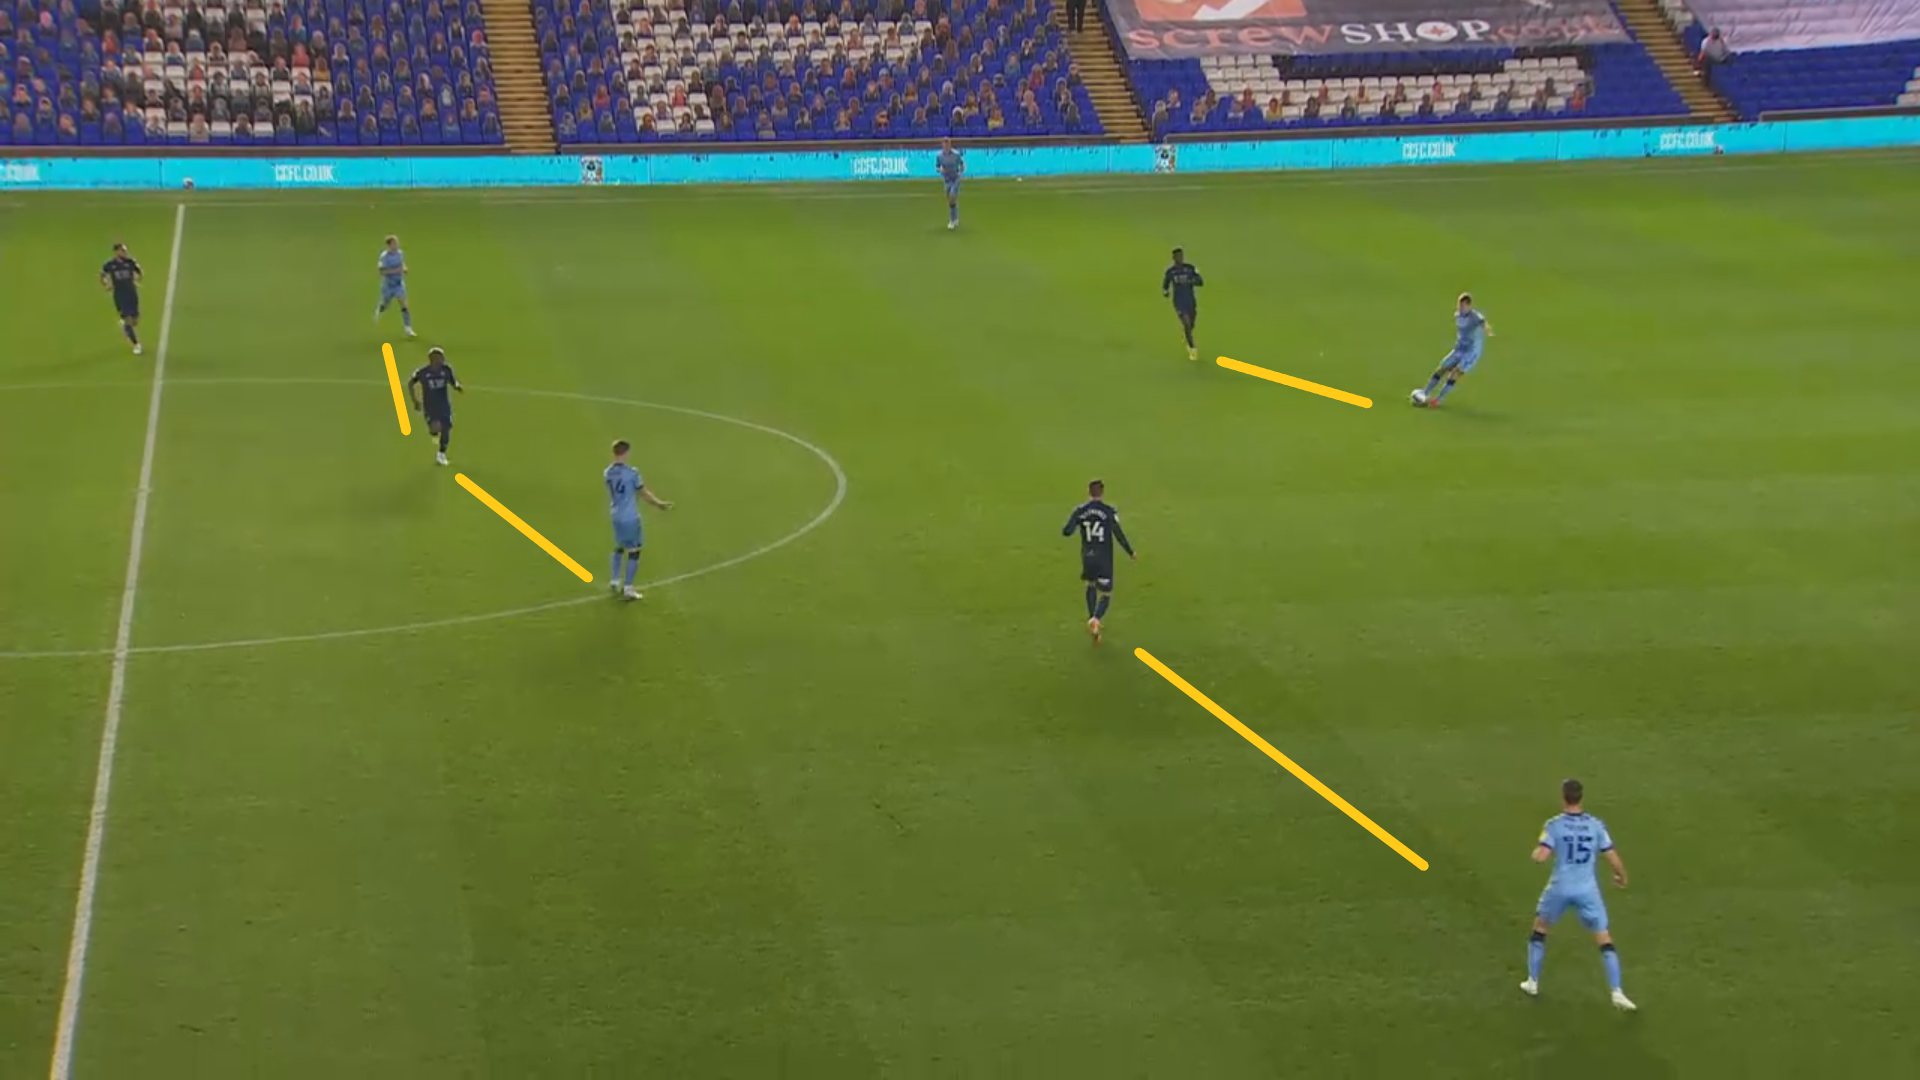 EFL Championship 2020/21: Coventry City vs Swansea City - tactical analysis - tactics